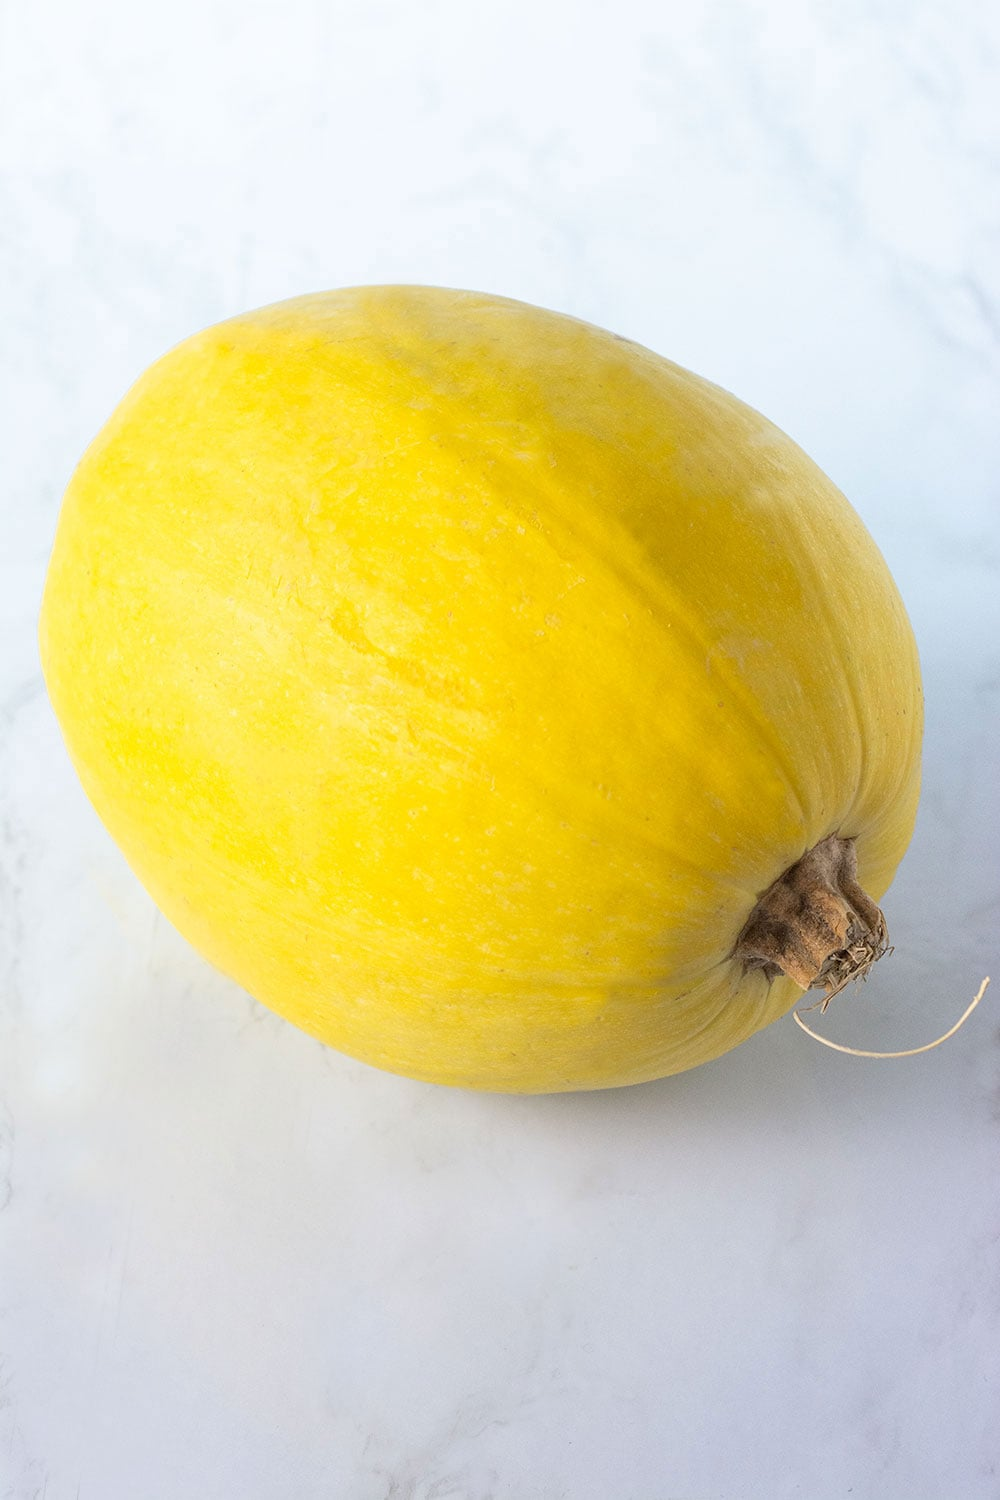 Whole spaghetti squash on a white background